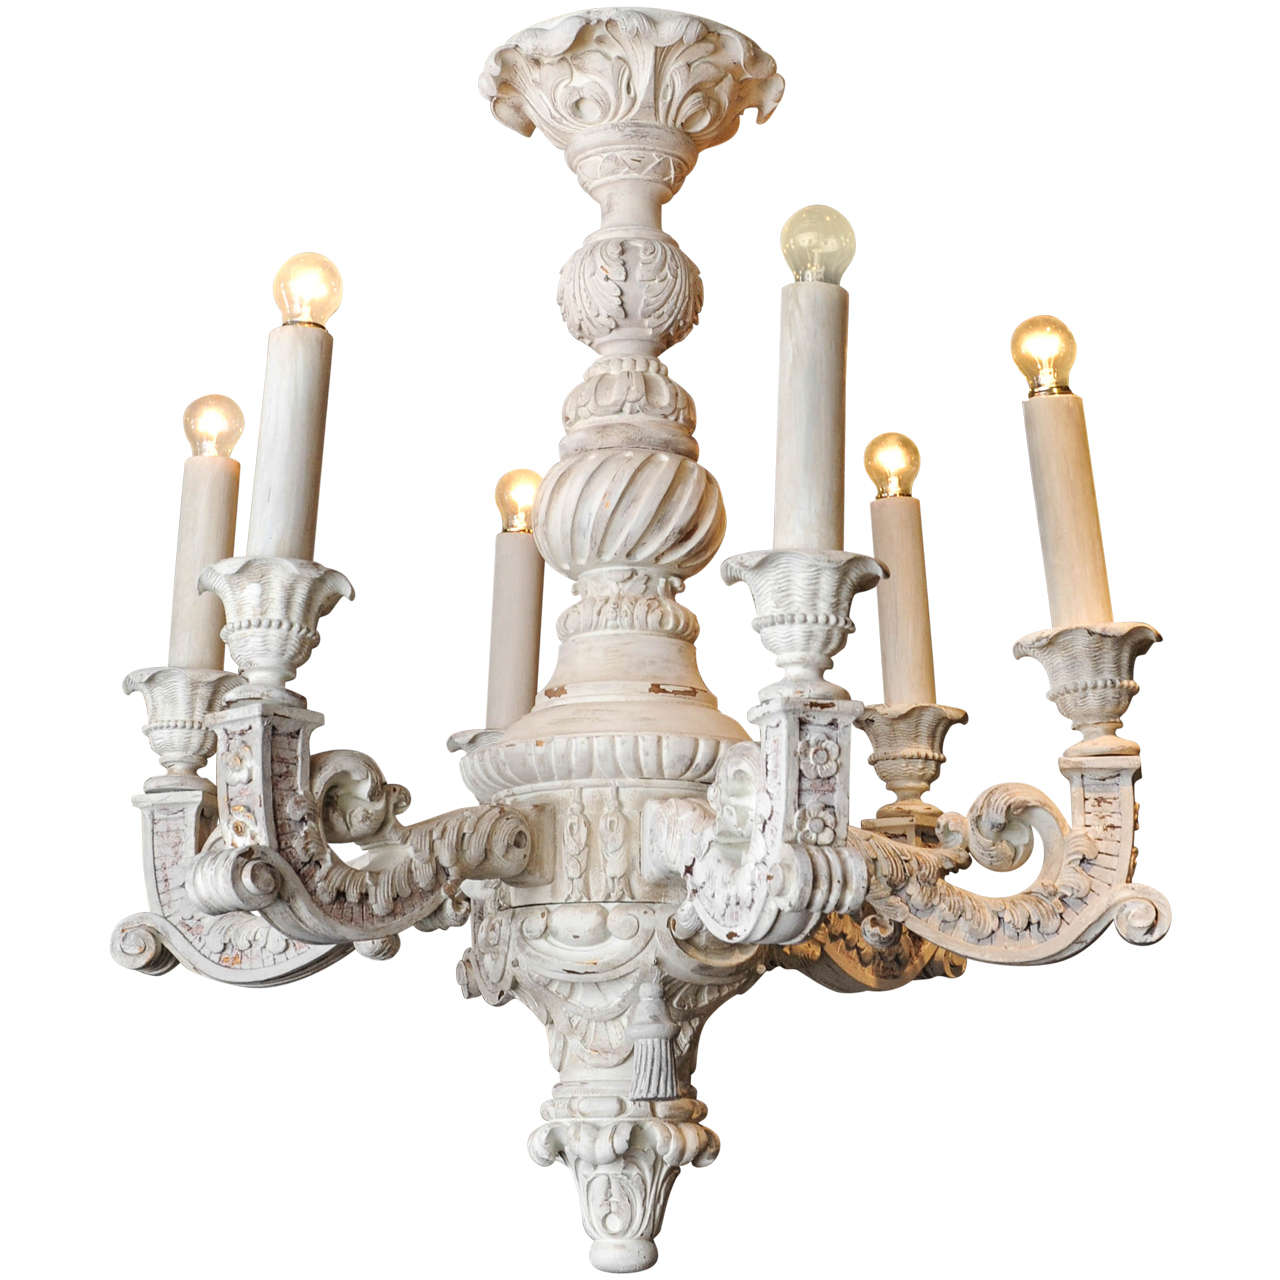 Large French Baroque Carved and Off-White Painted Wooden ...:Large French Baroque Carved and Off-White Painted Wooden Chandelier 1,Lighting